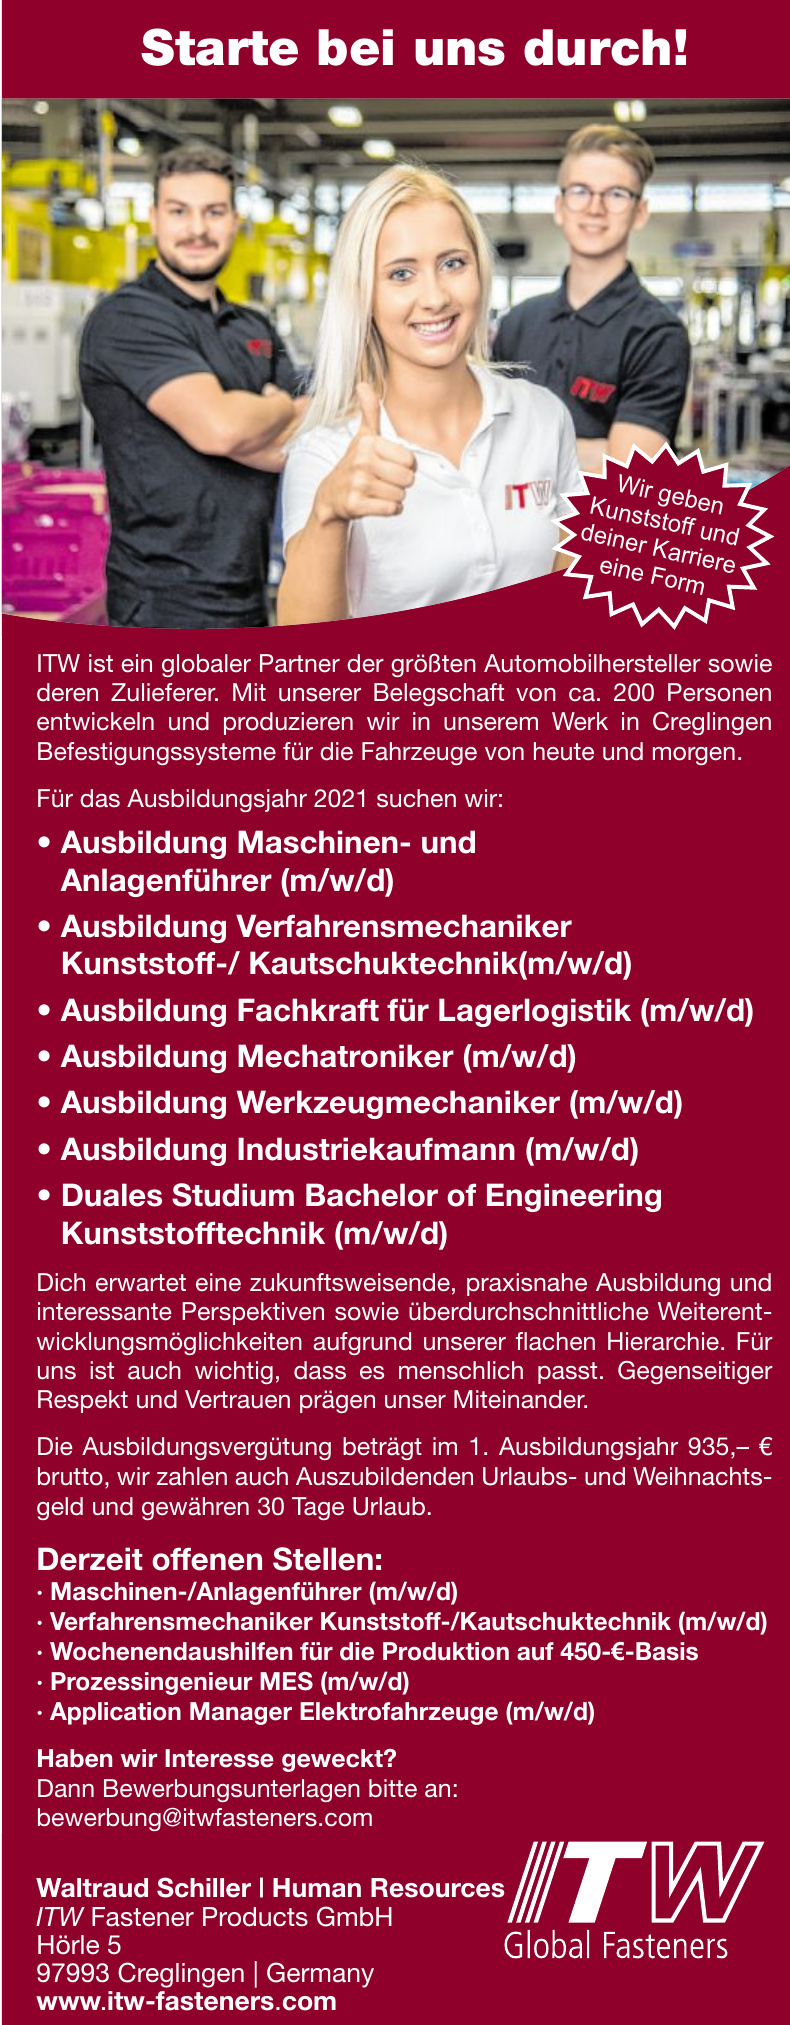 ITW Fasteners Products GmbH